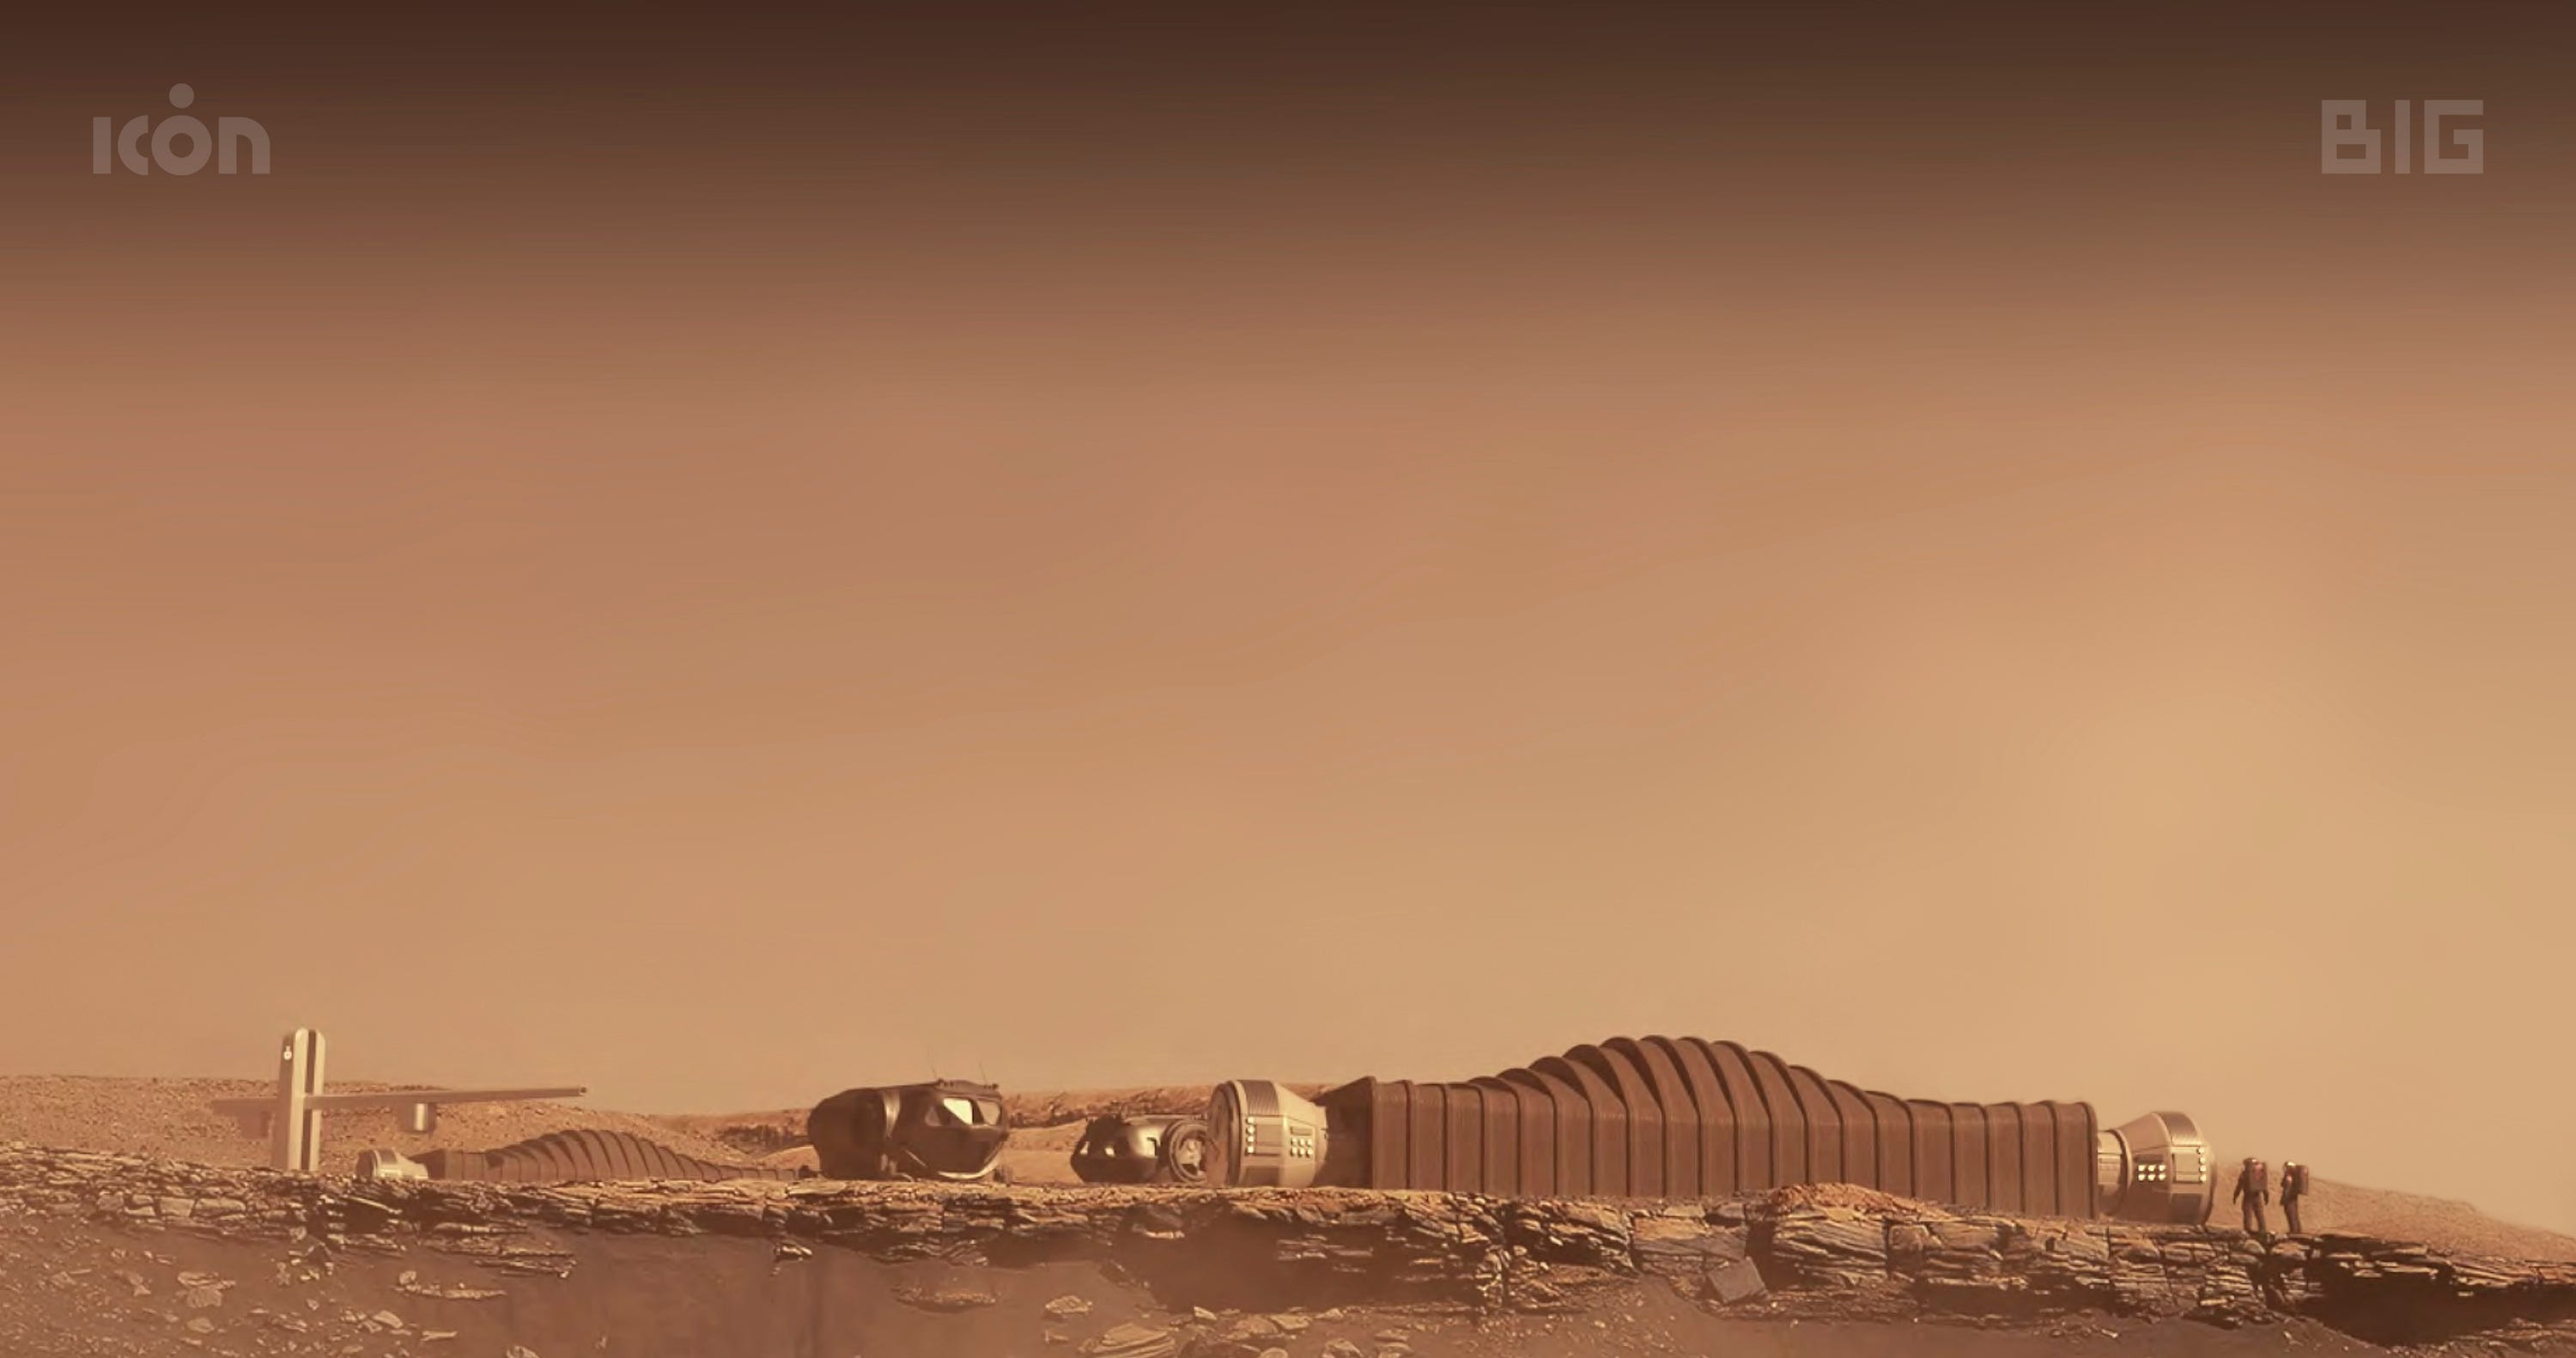 Life on the Red Planet? NASA is looking for 4 people to live inside their 3D-printed Mars module for a year